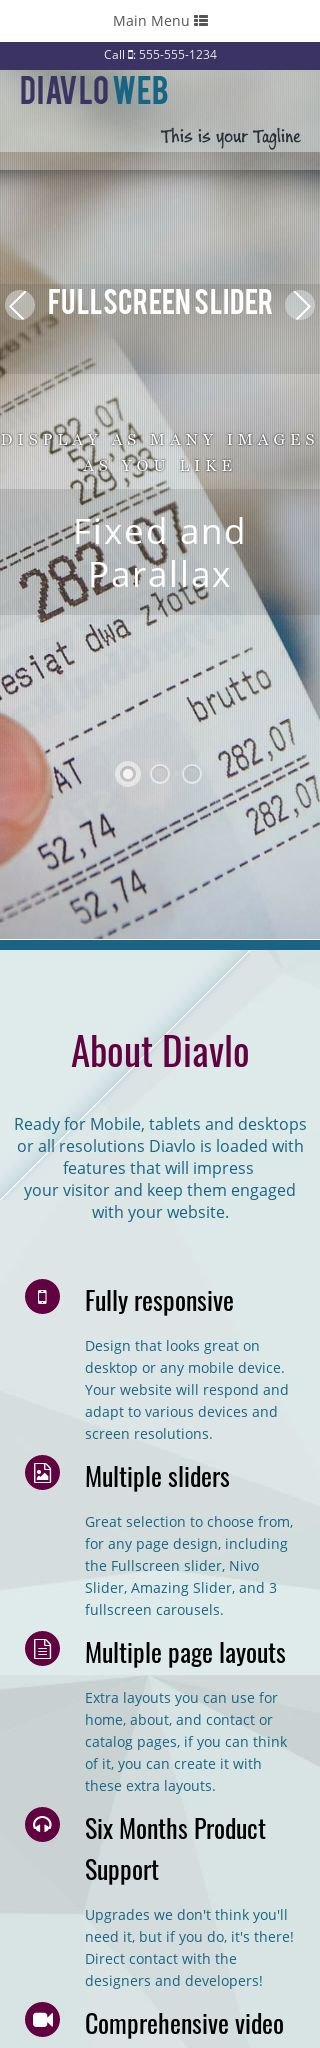 Mobile: Accounting Dreamweaver Template